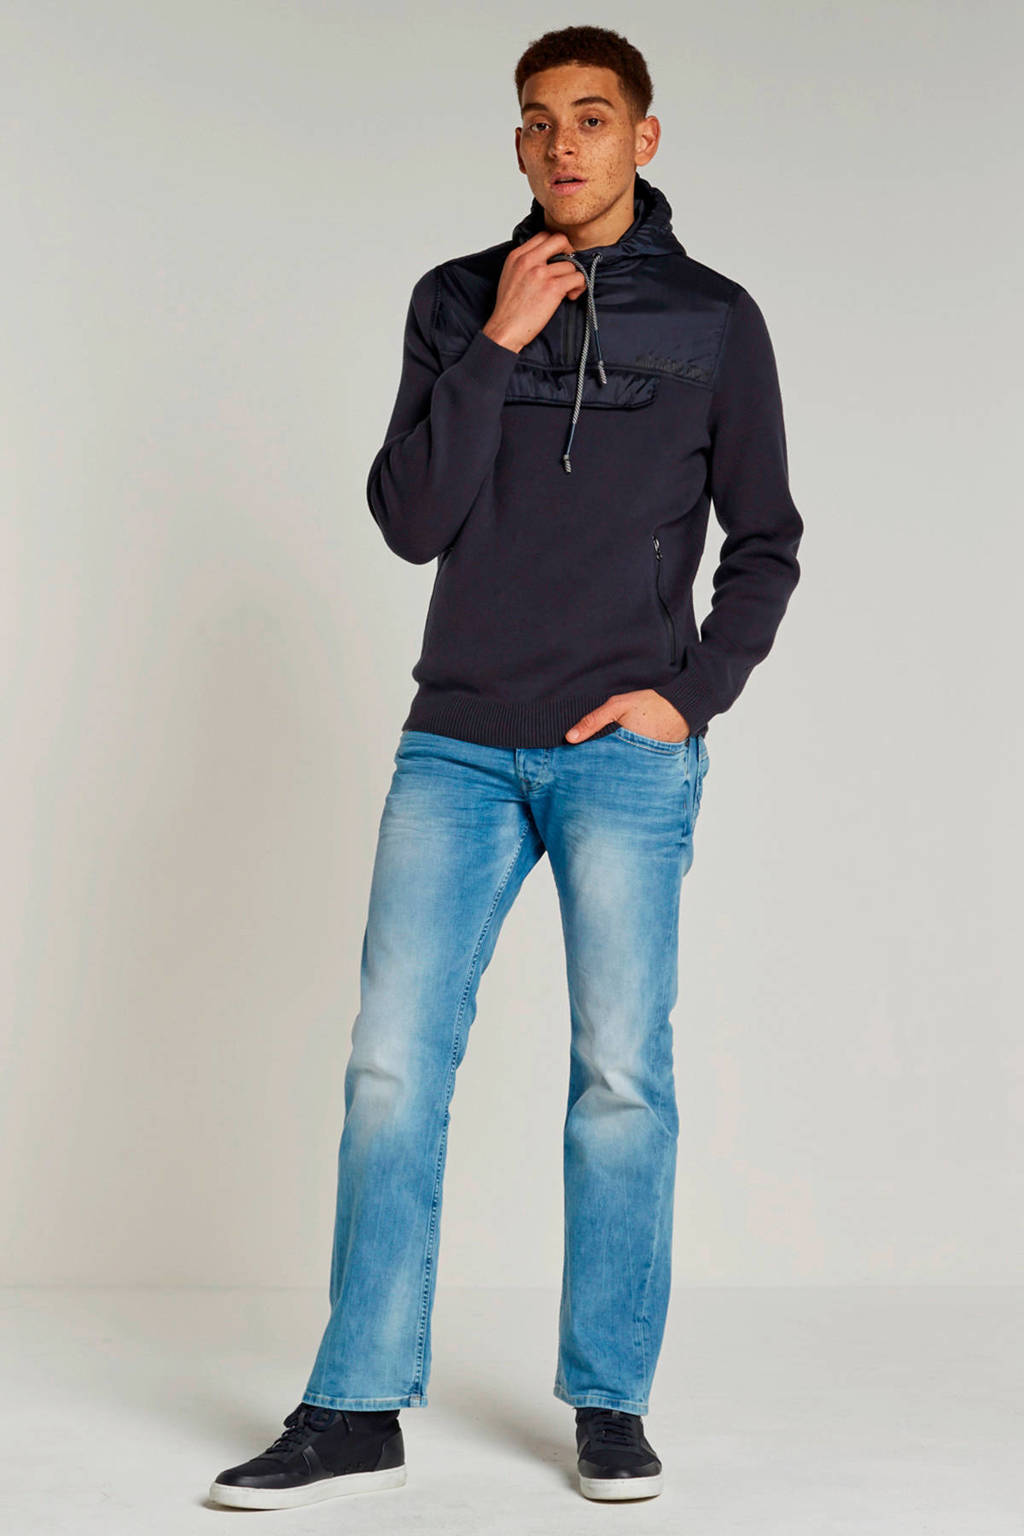 Pepe Jeans regular fit jeans Jeanius, S55 Lichtblauw